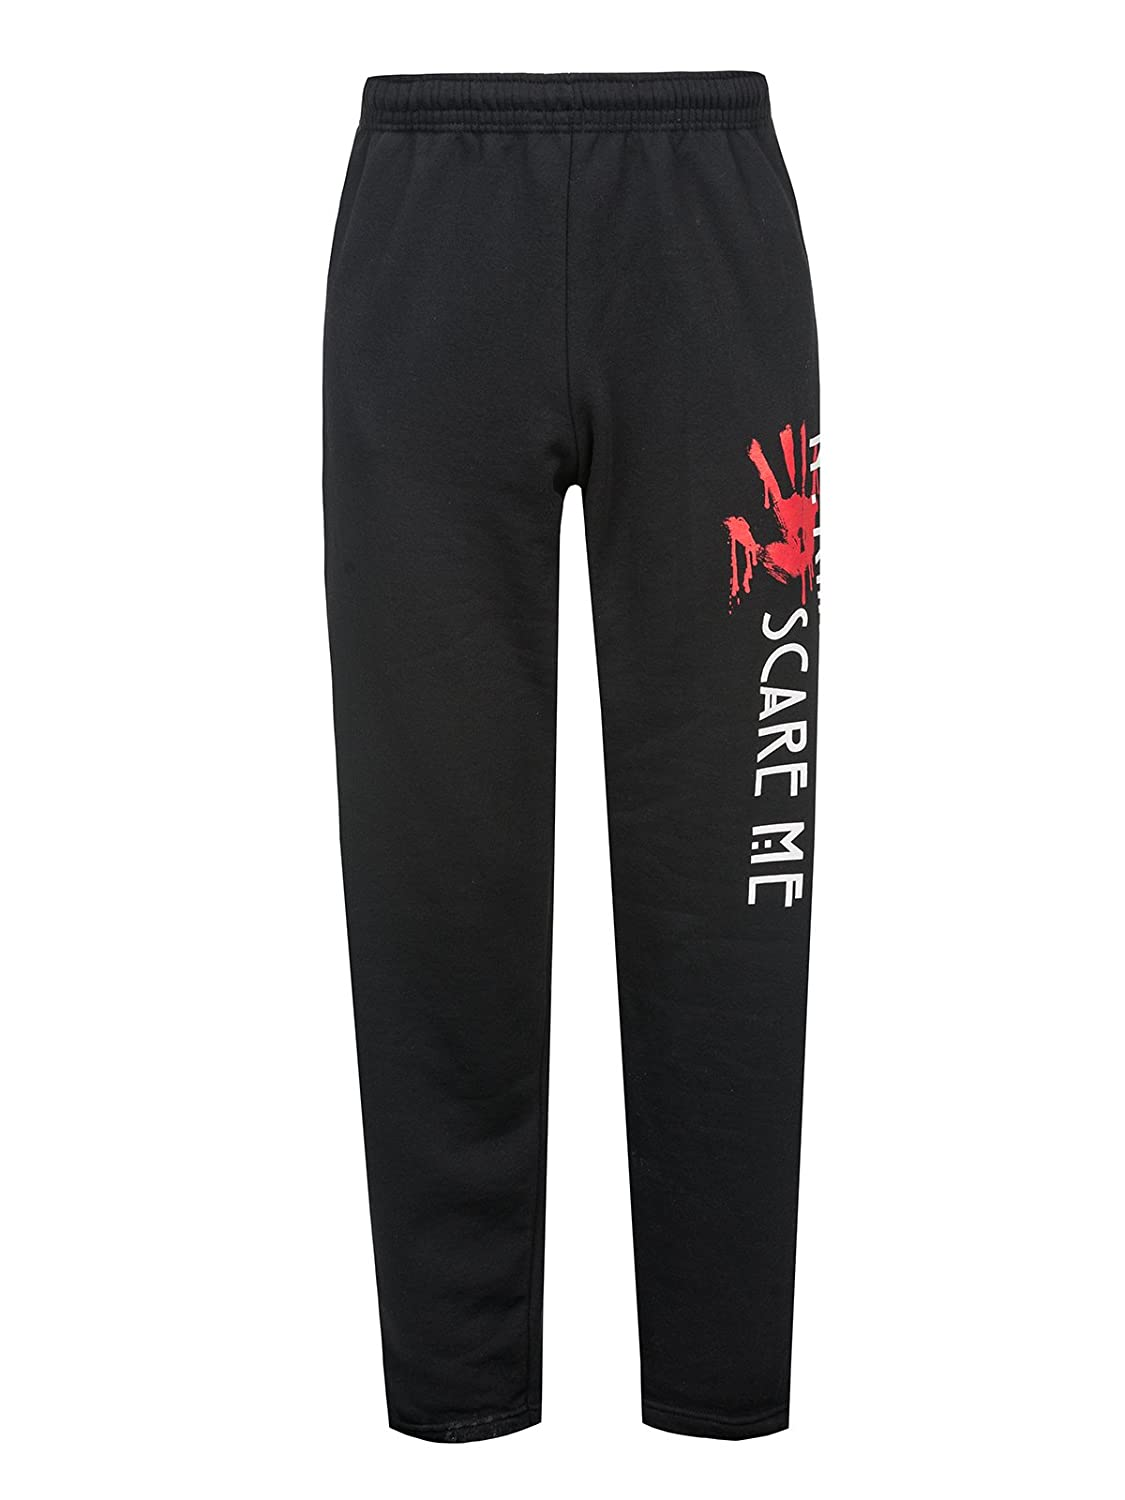 American Horror Story Normal People Tracksuit Trousers Black